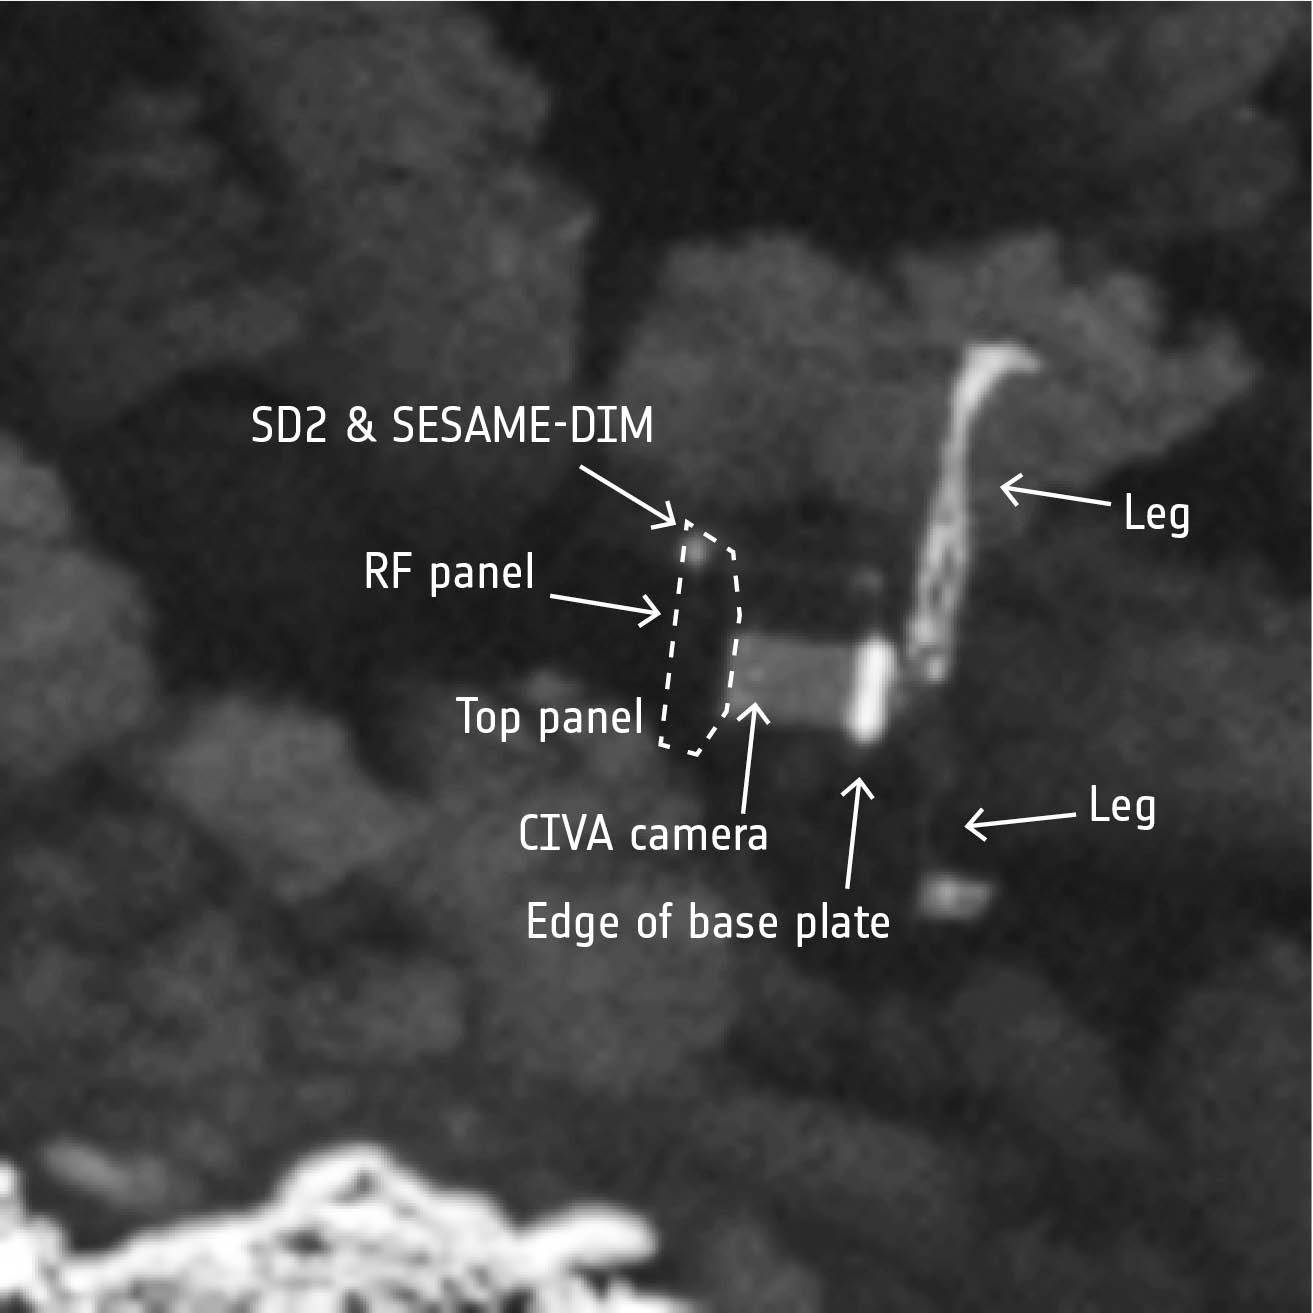 This annotated view shows how Philae finally ended up on the surface of Comet 67P as seen by the European Space Agency's Rosetta spacecraft on Sept. 2, 2016. Credit: ESA/Rosetta/MPS for OSIRIS Team MPS/UPD/LAM/IAA/SSO/INTA/UPM/DASP/IDA